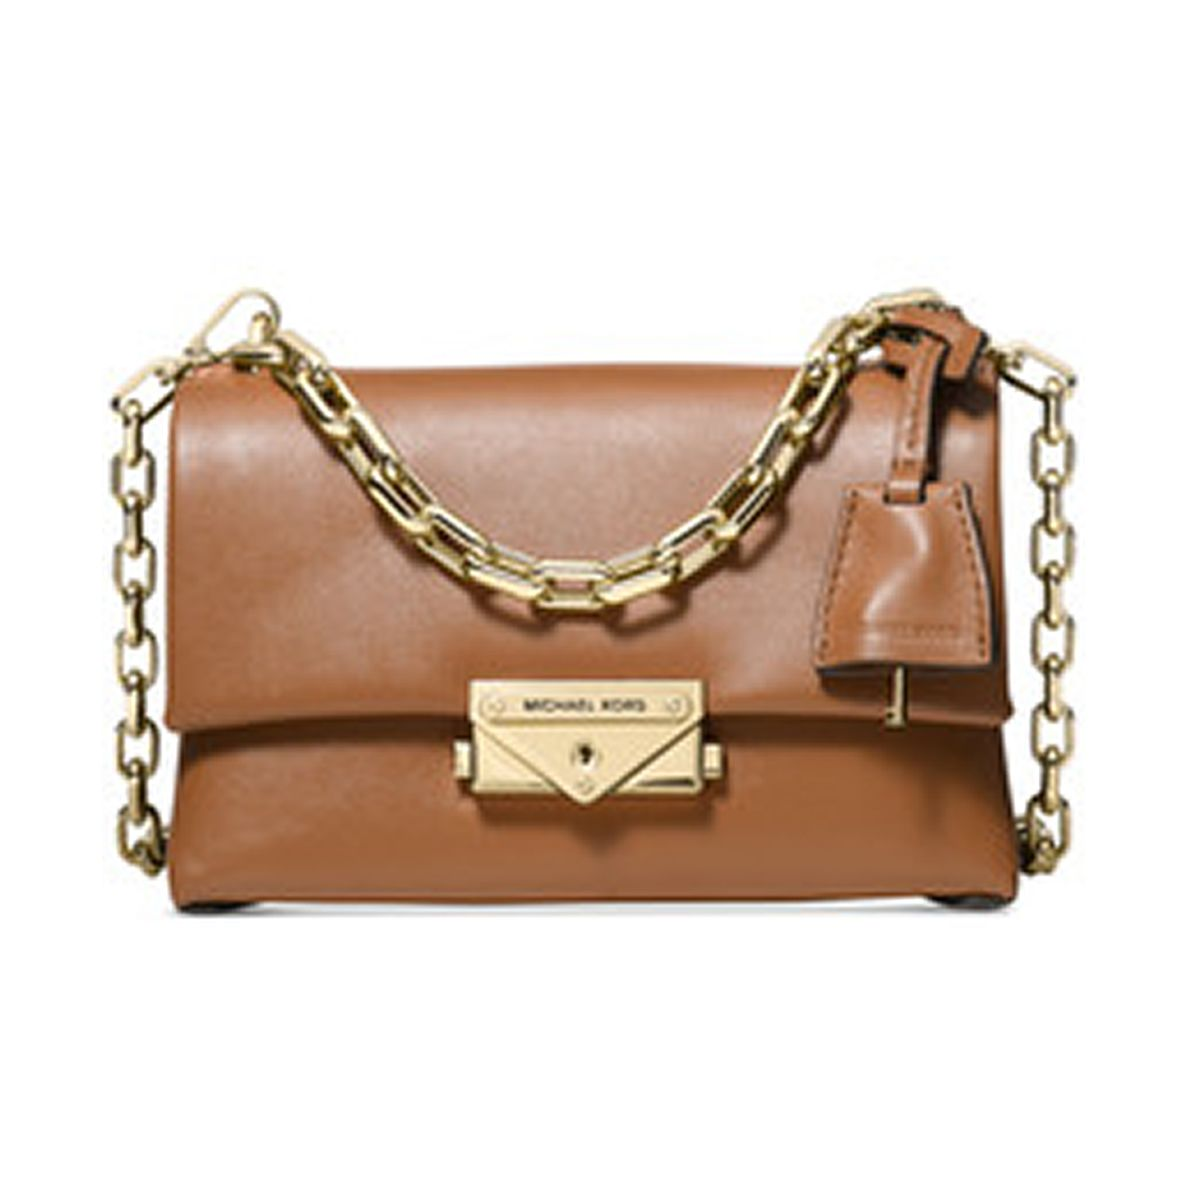 27868e037316 Michael Kors Handbags - Macy's